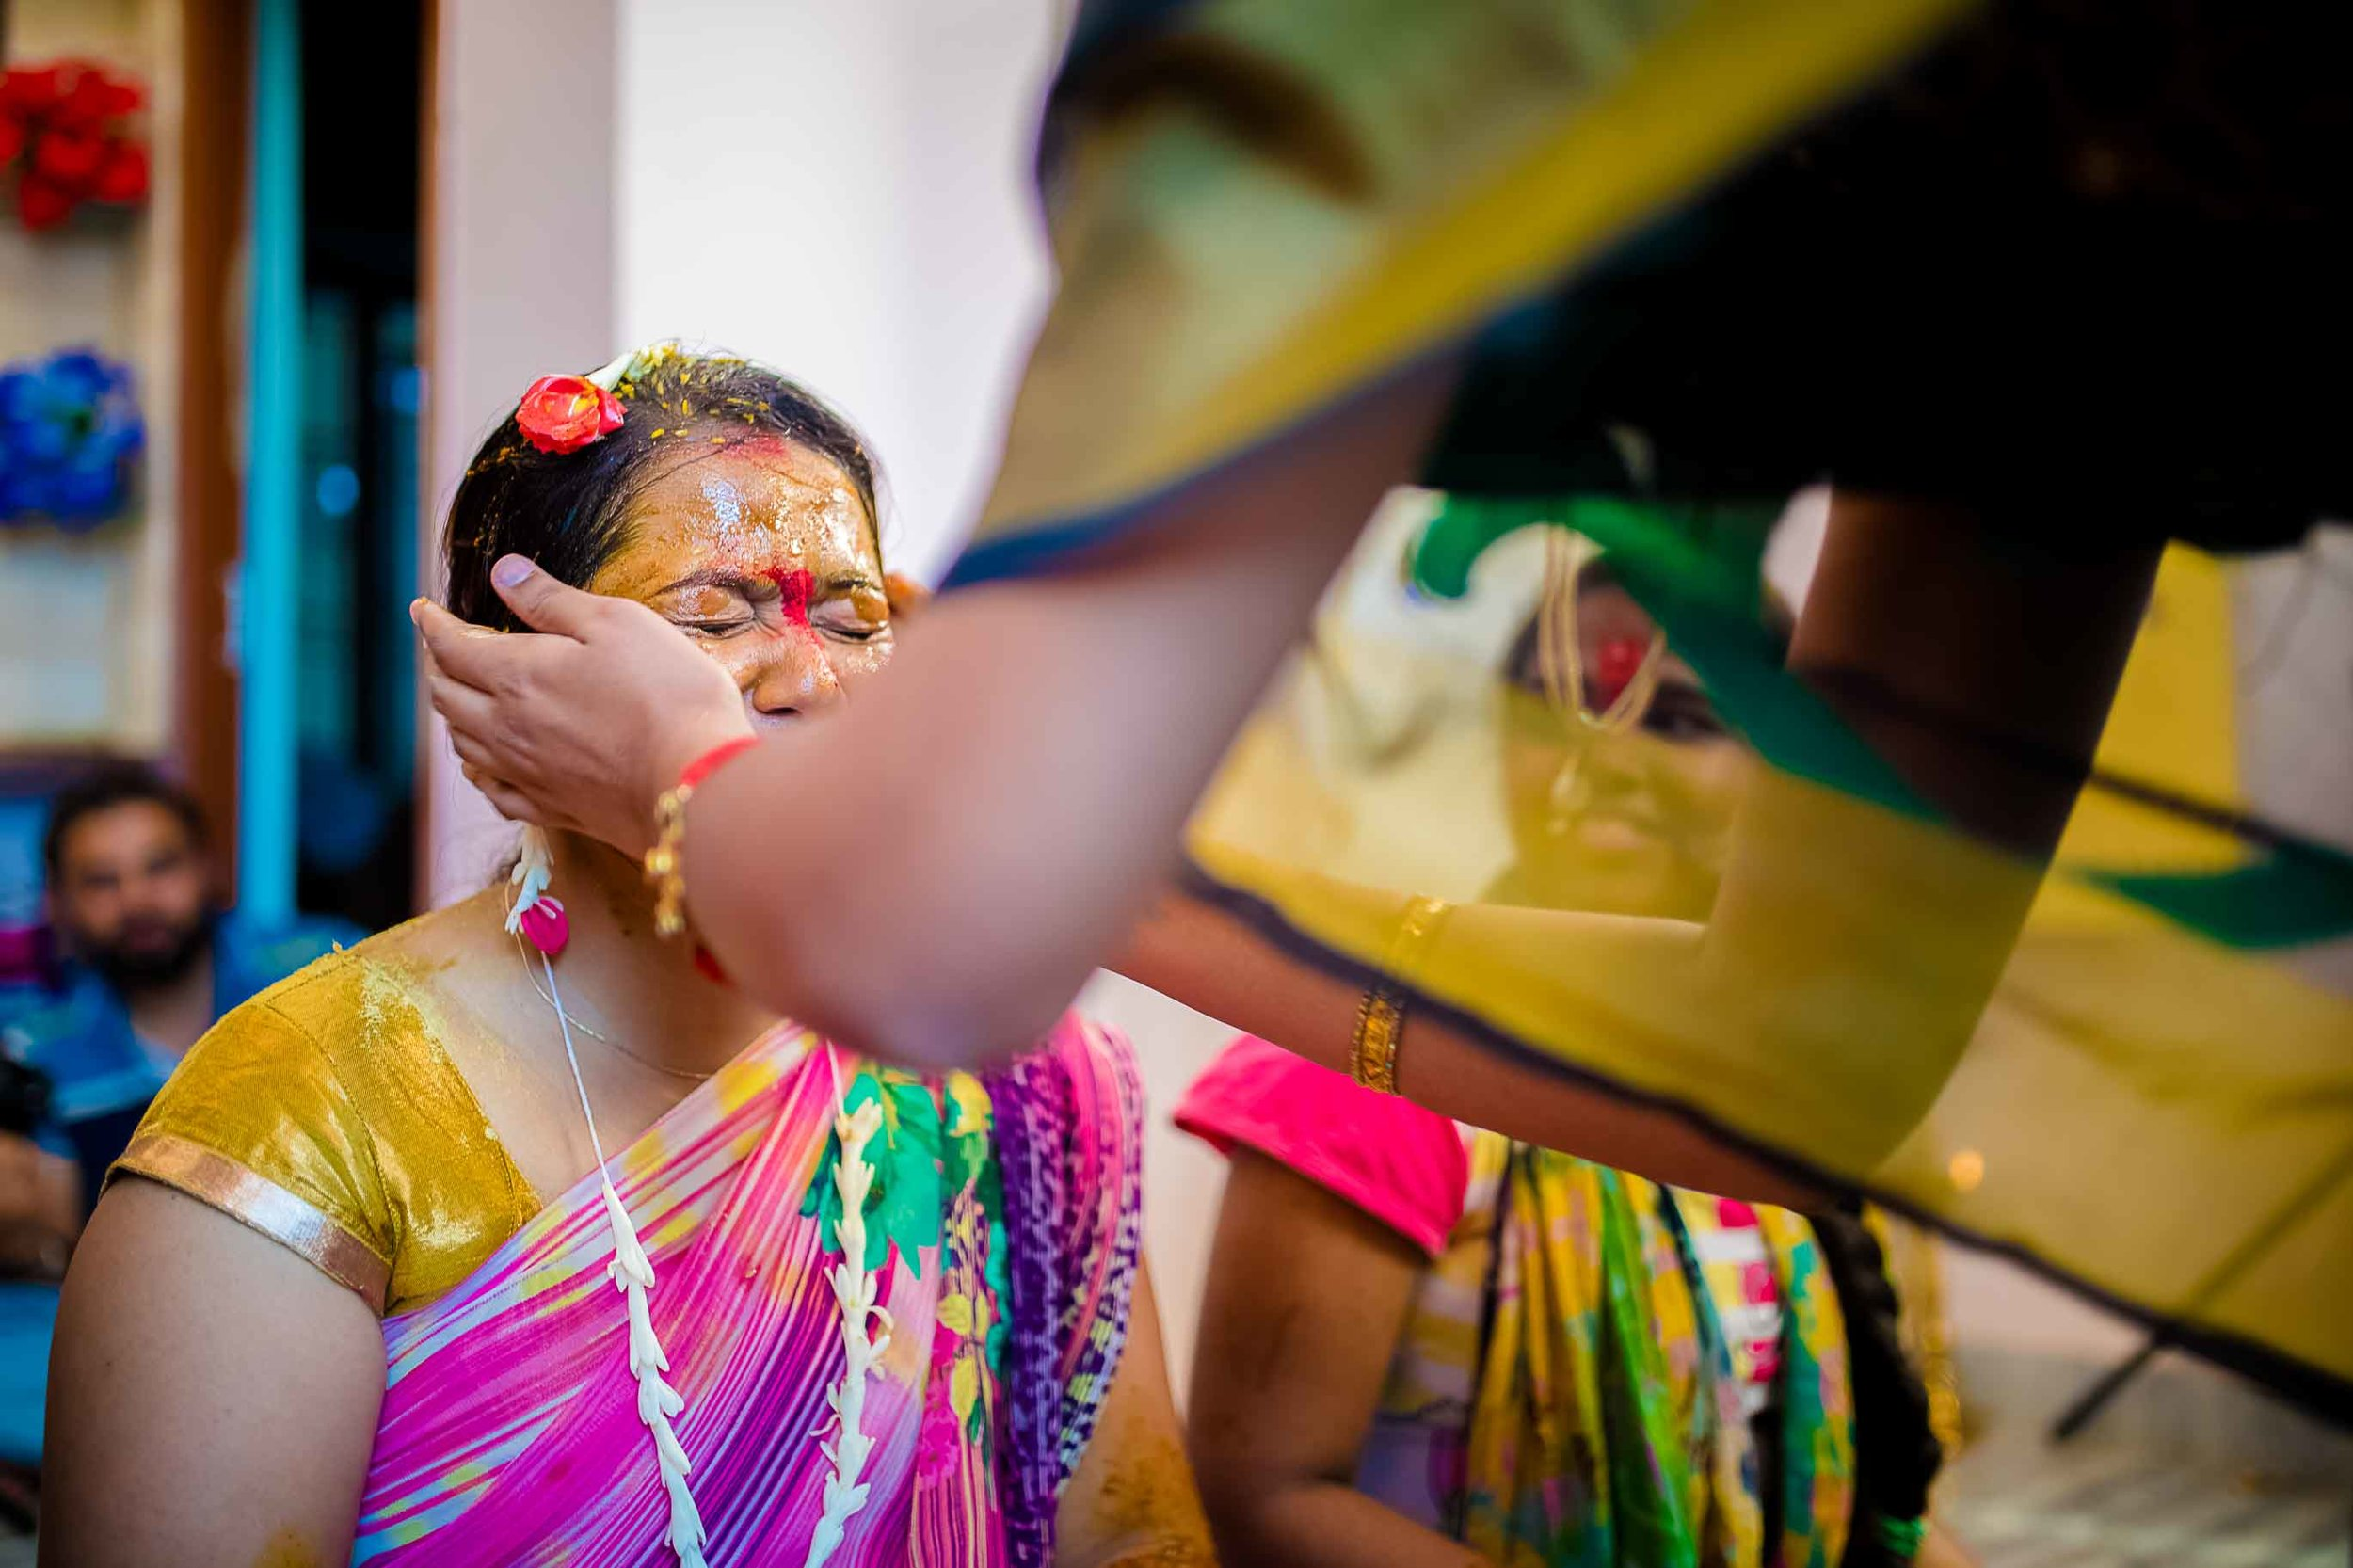 Pixel-Chronicles-Alekhya-Chaitanya-Nellore-Candid-Wedding-Haldi-Ceremony-3.jpg